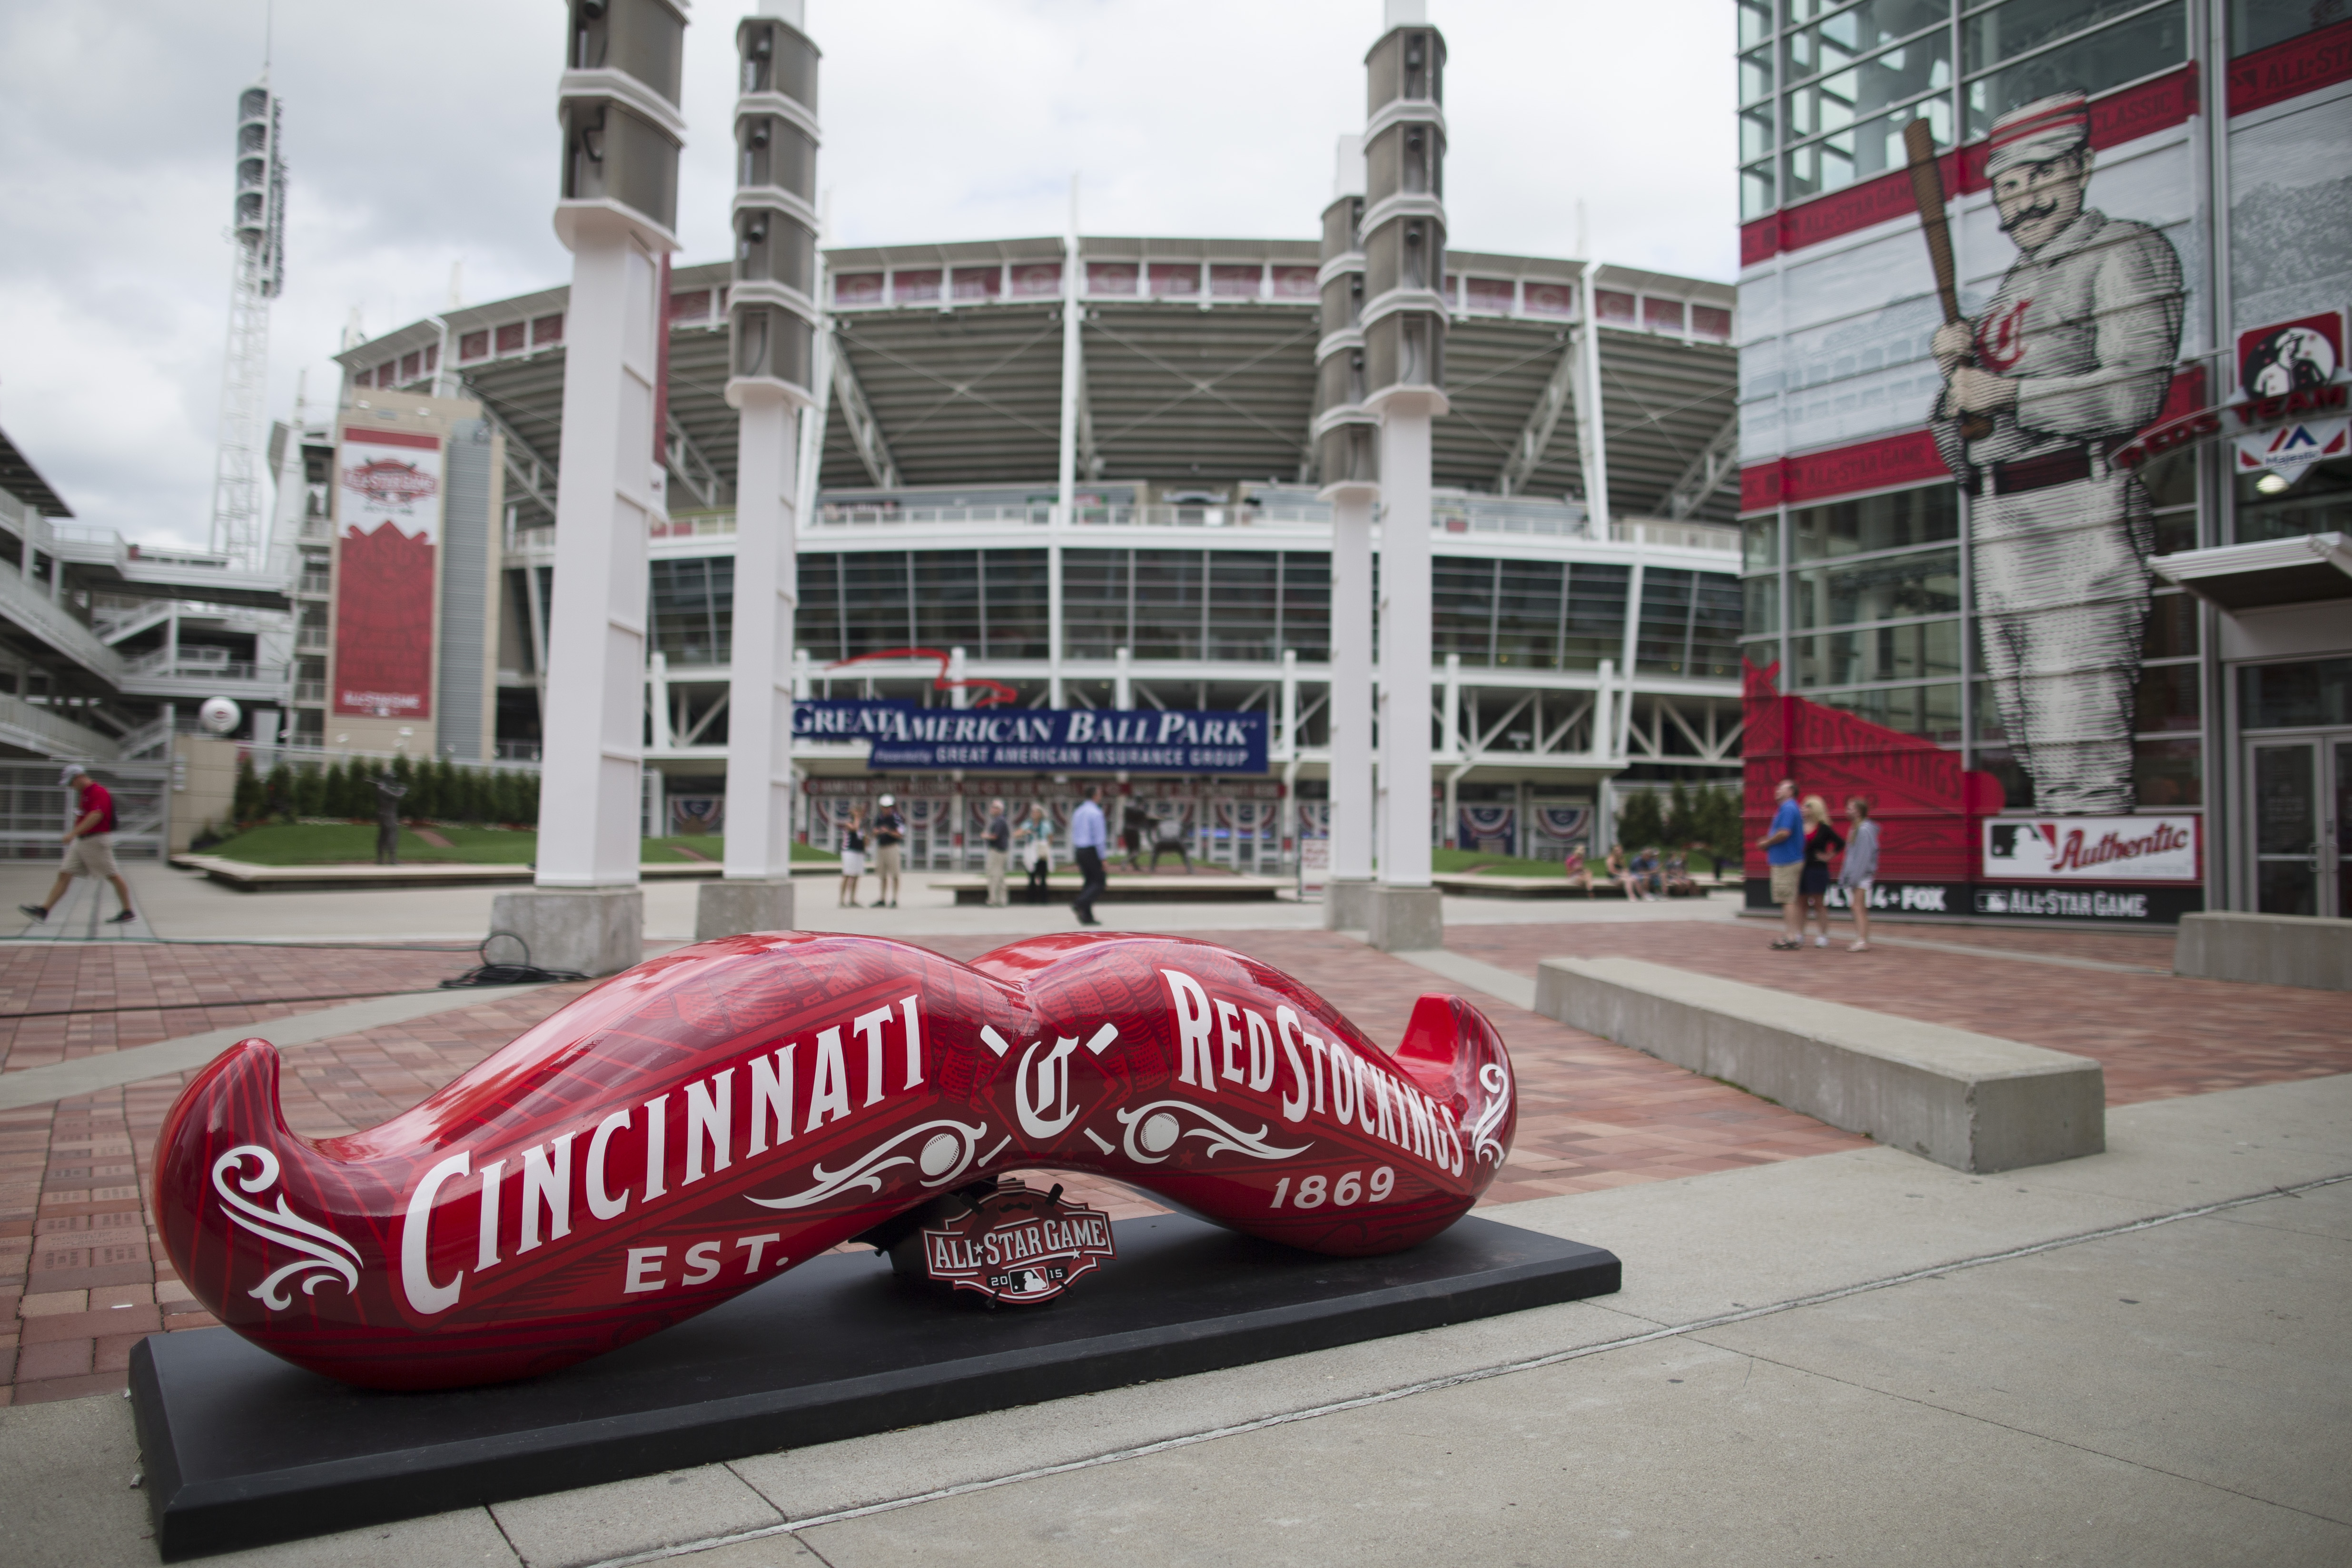 Pedestrians mill about Great American Ball Park as signs advertising the 2015 All-Star Game Baseball game decorate the perimeter, Thursday, July 9, 2015, in Cincinnati. The city is preparing for a weekend of events in the lead-up to the July 14 game. (AP